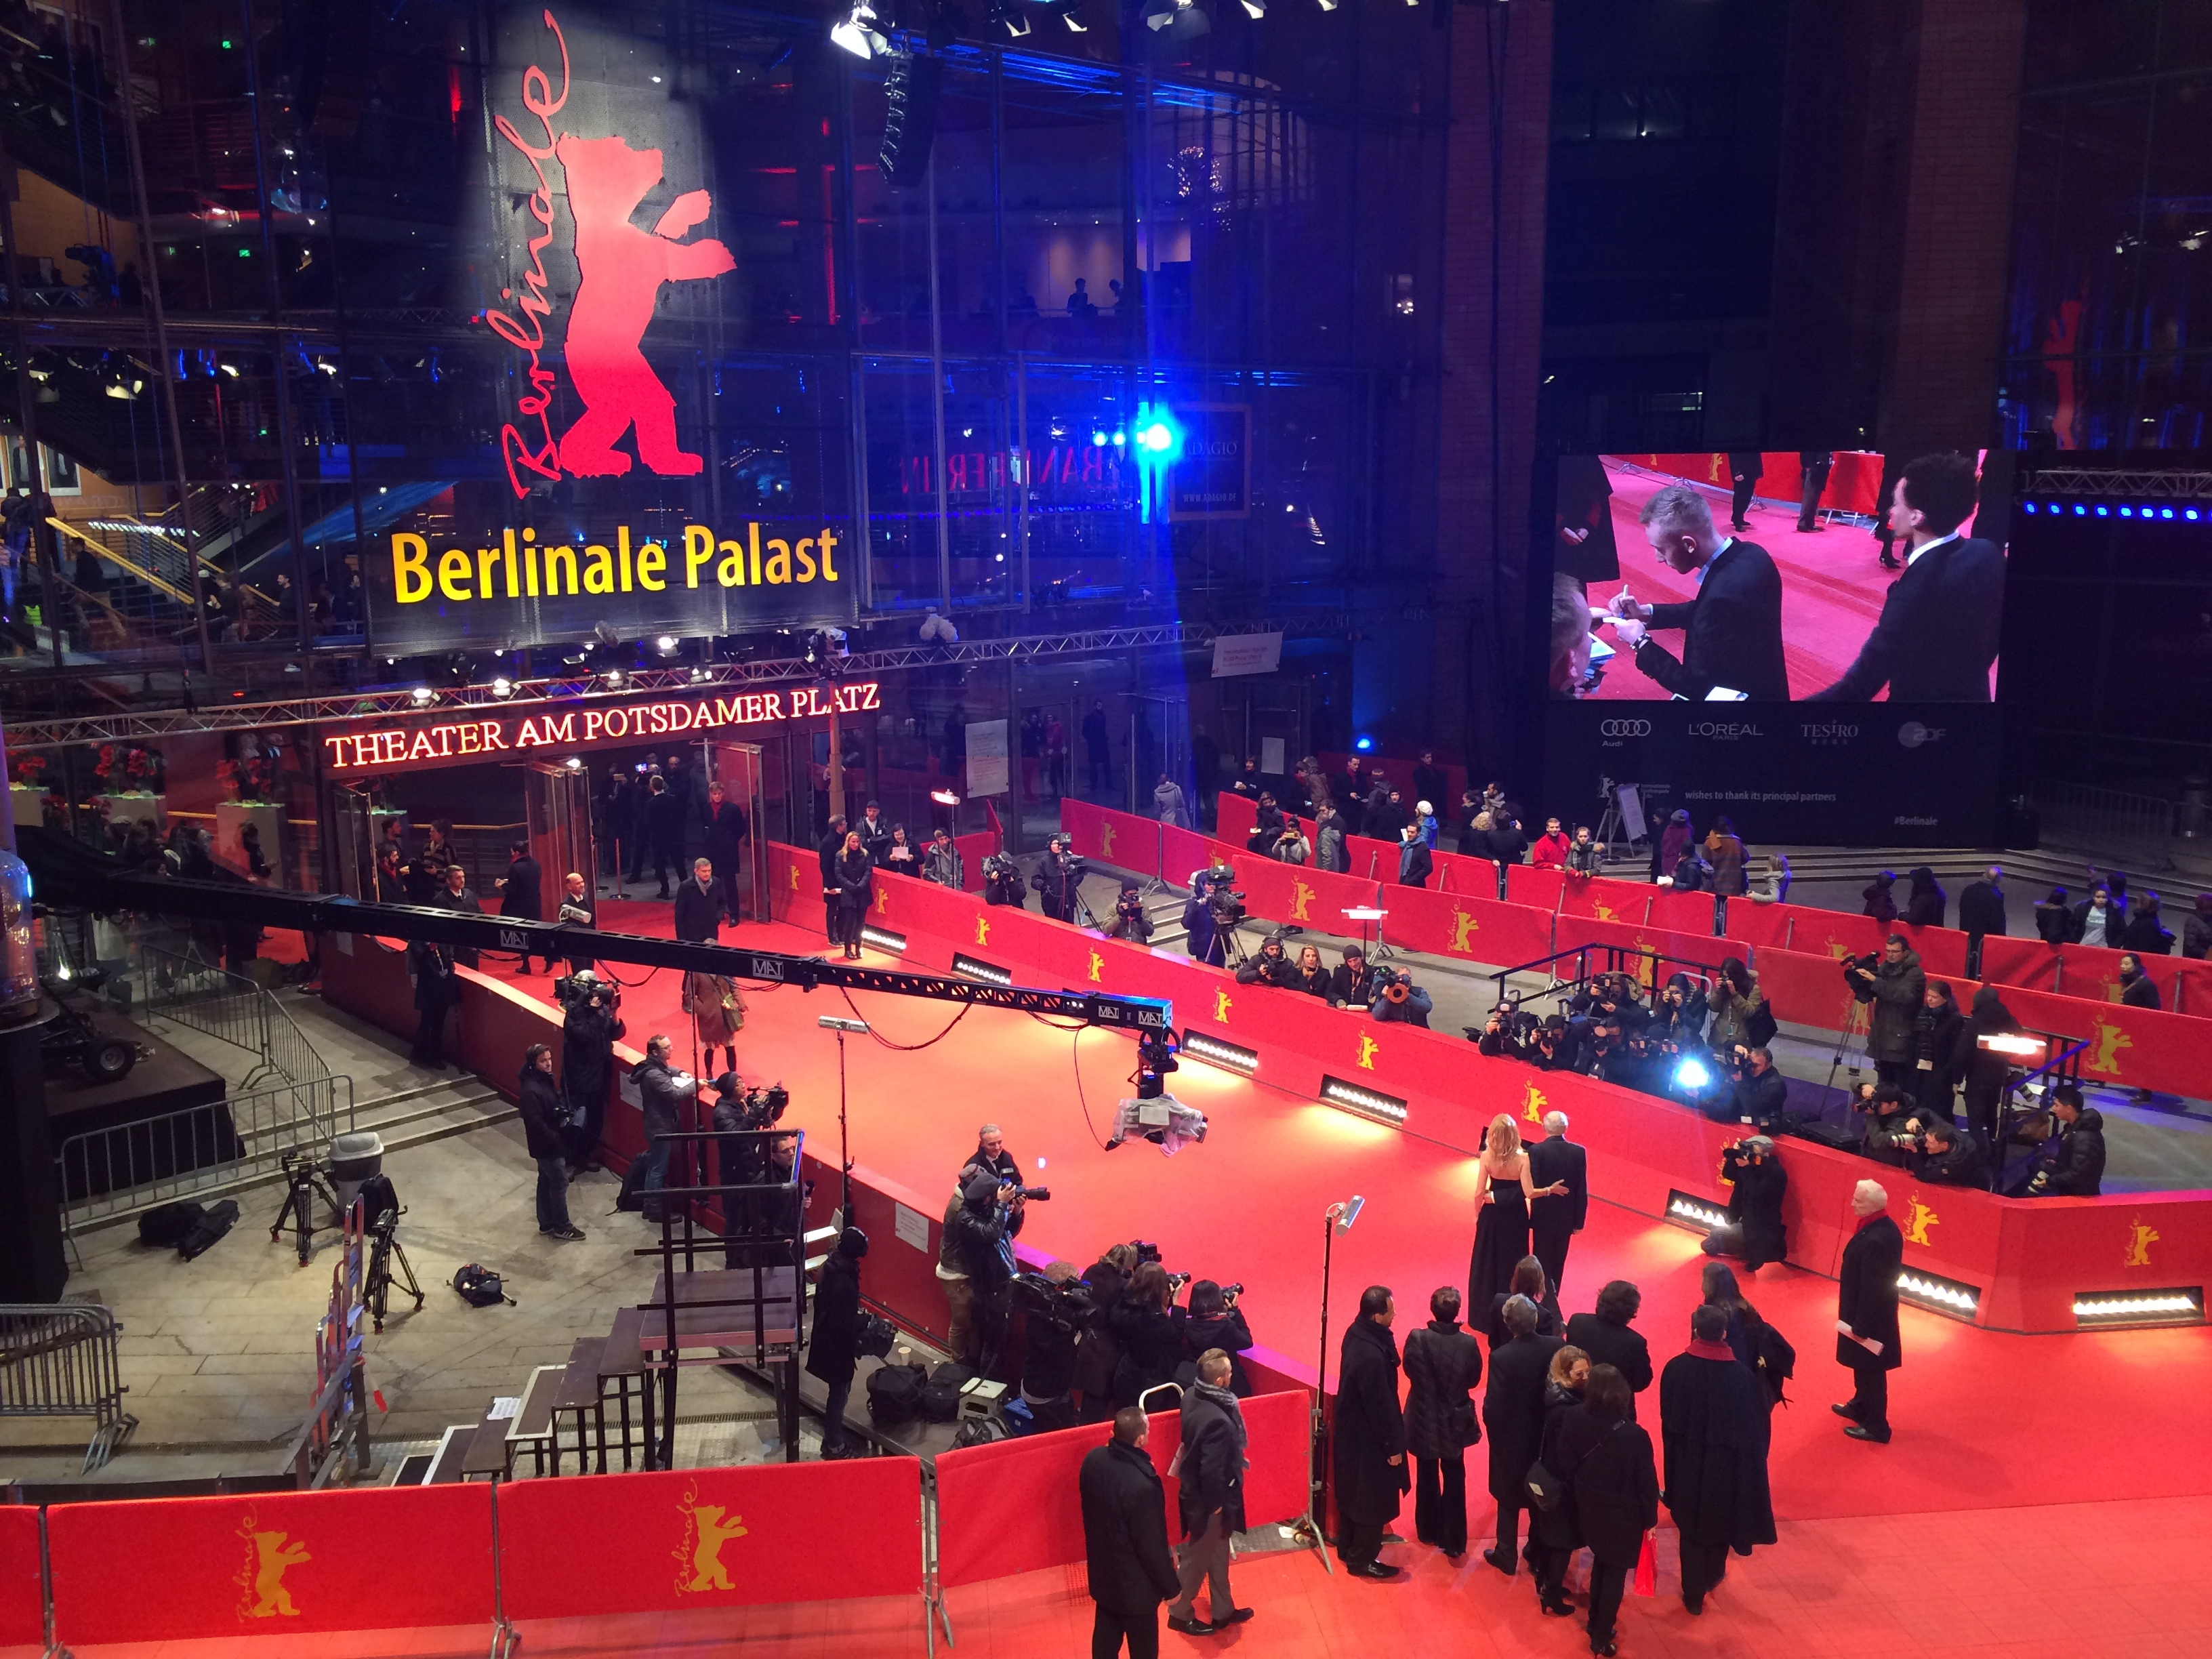 Roter Teppich Kaufen Berlinale Palast A Roter Teppich Berlin 2016 02 15 Qf